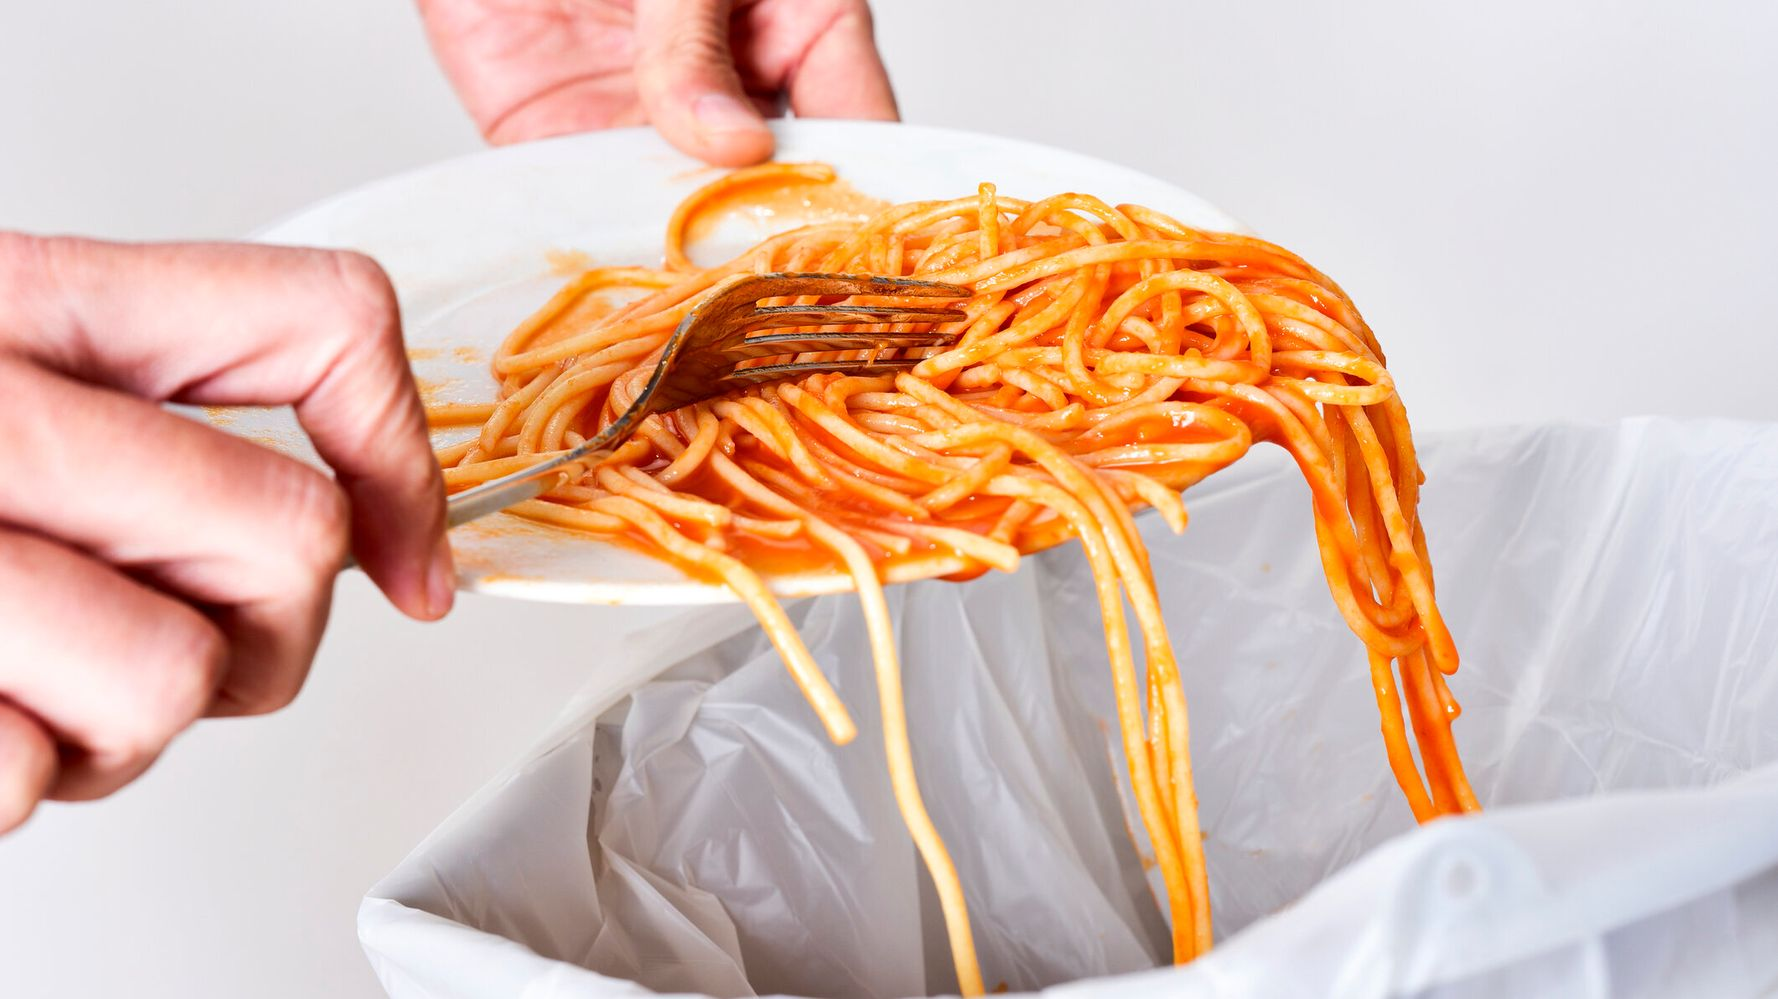 throwing out Tempting food